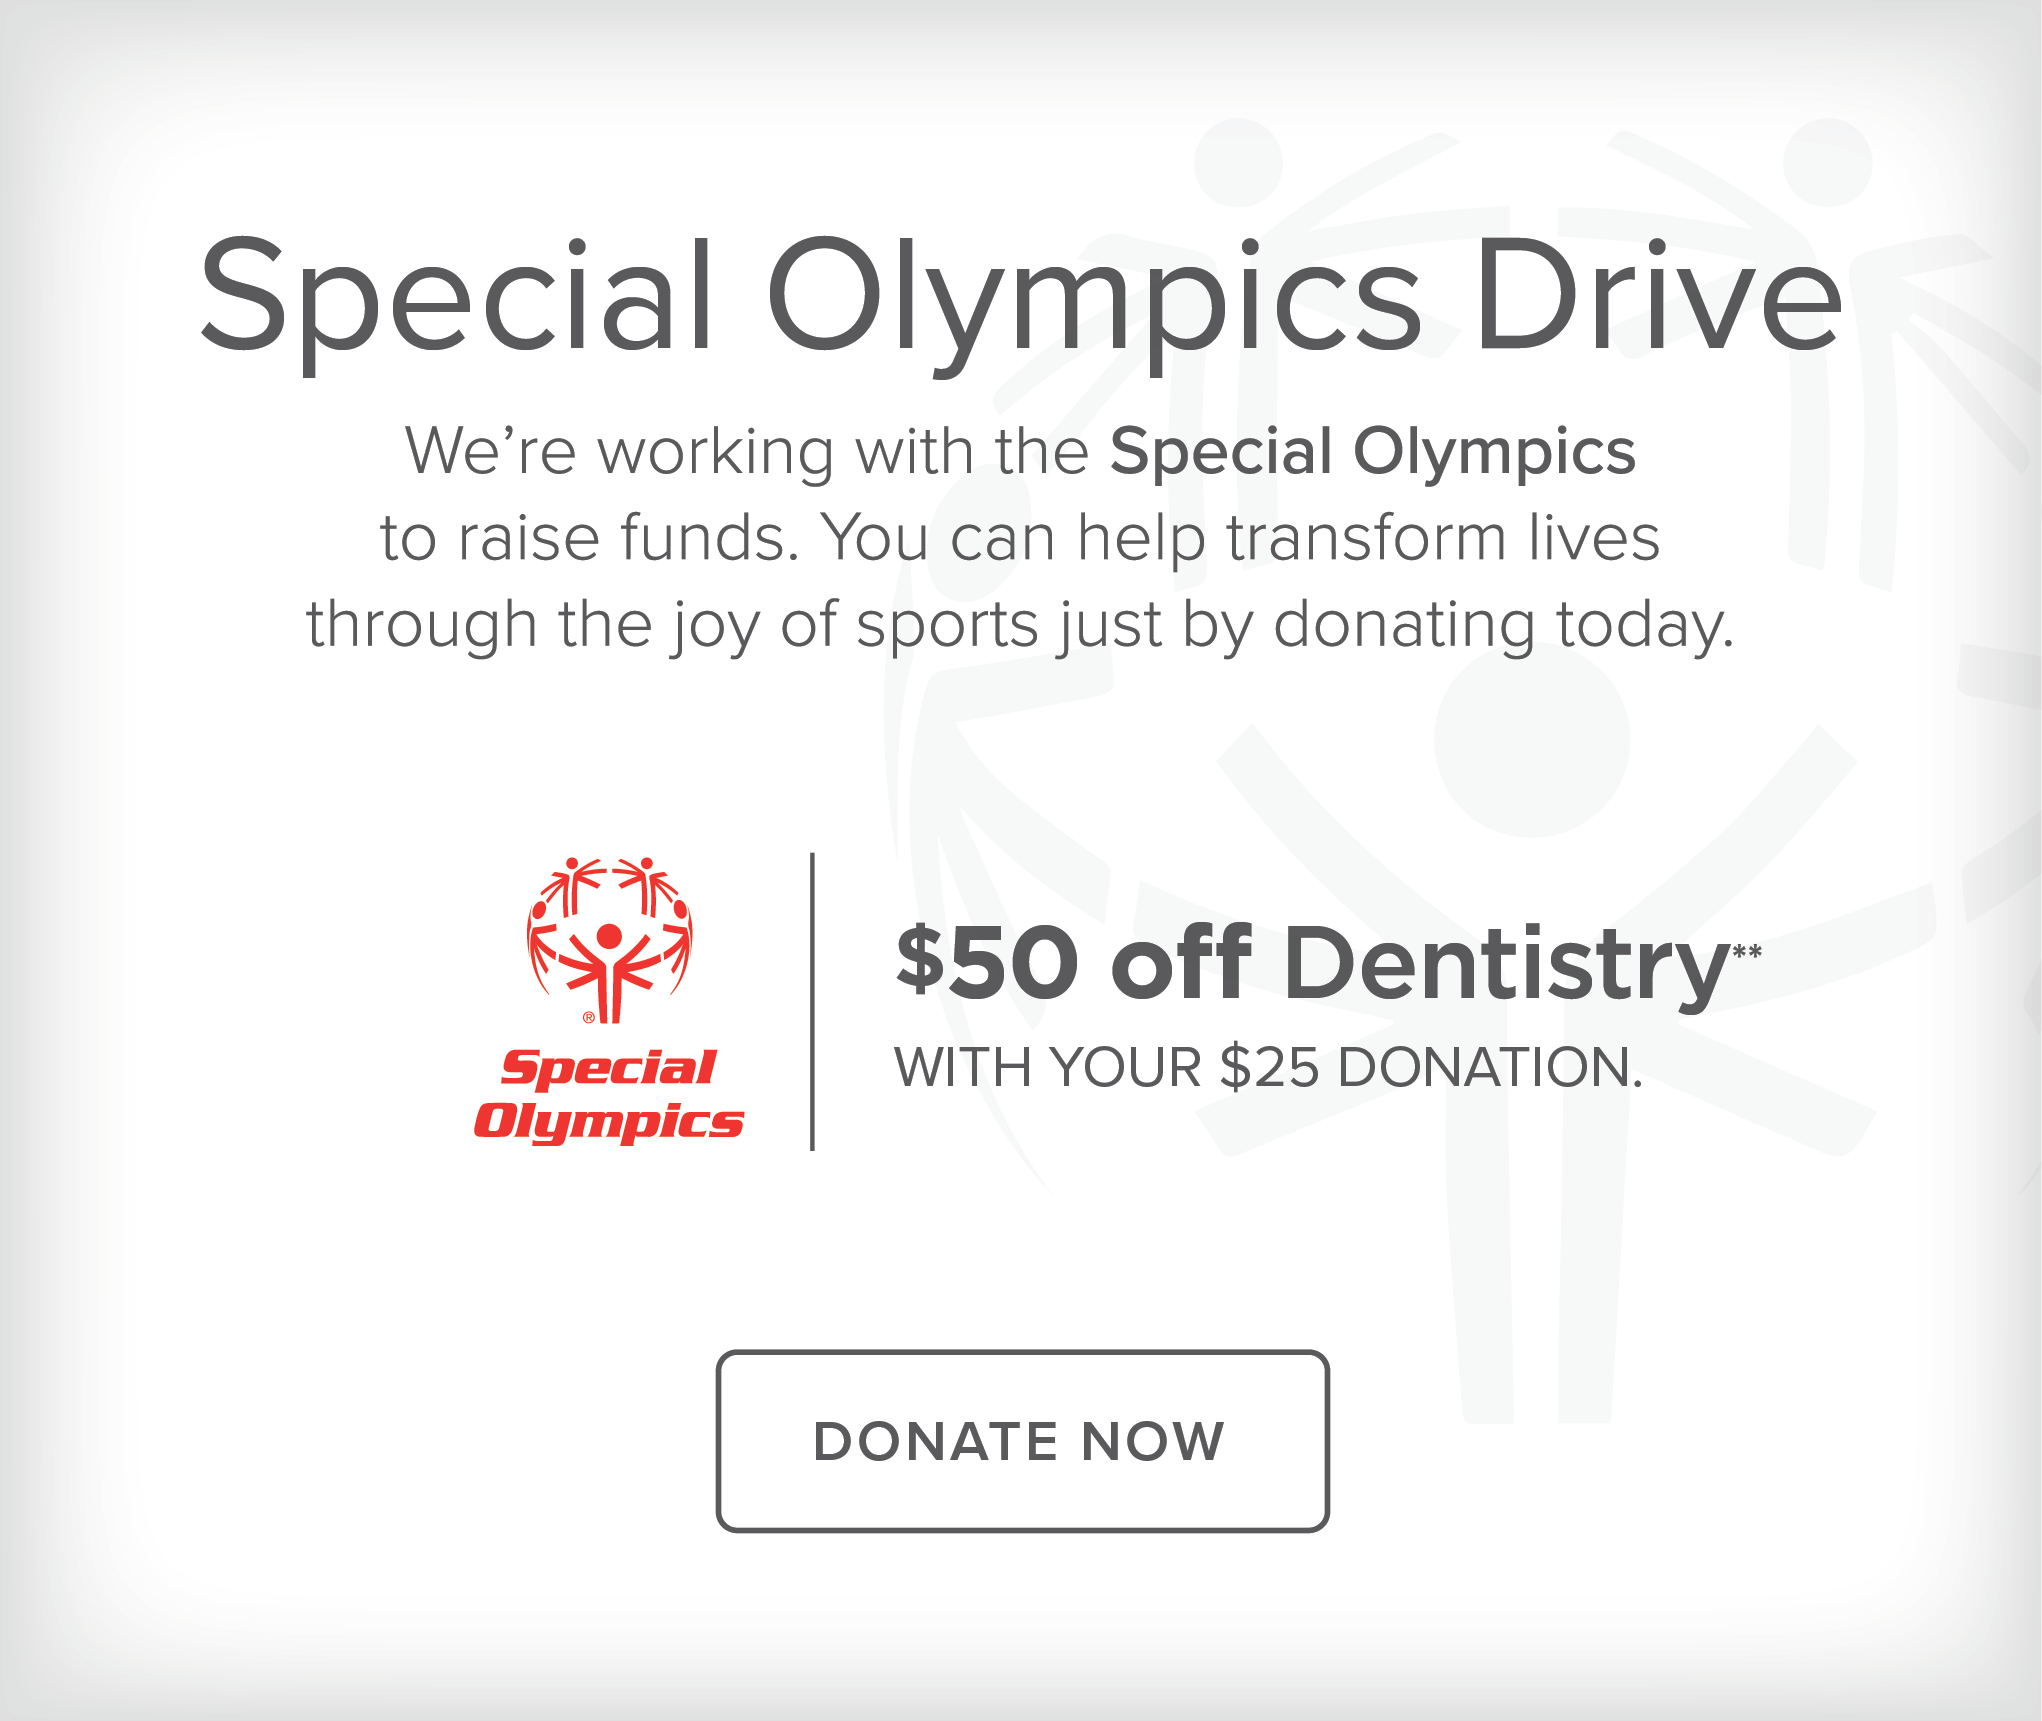 Special Olympics Drive - Redstone Dental Group and Orthodontics